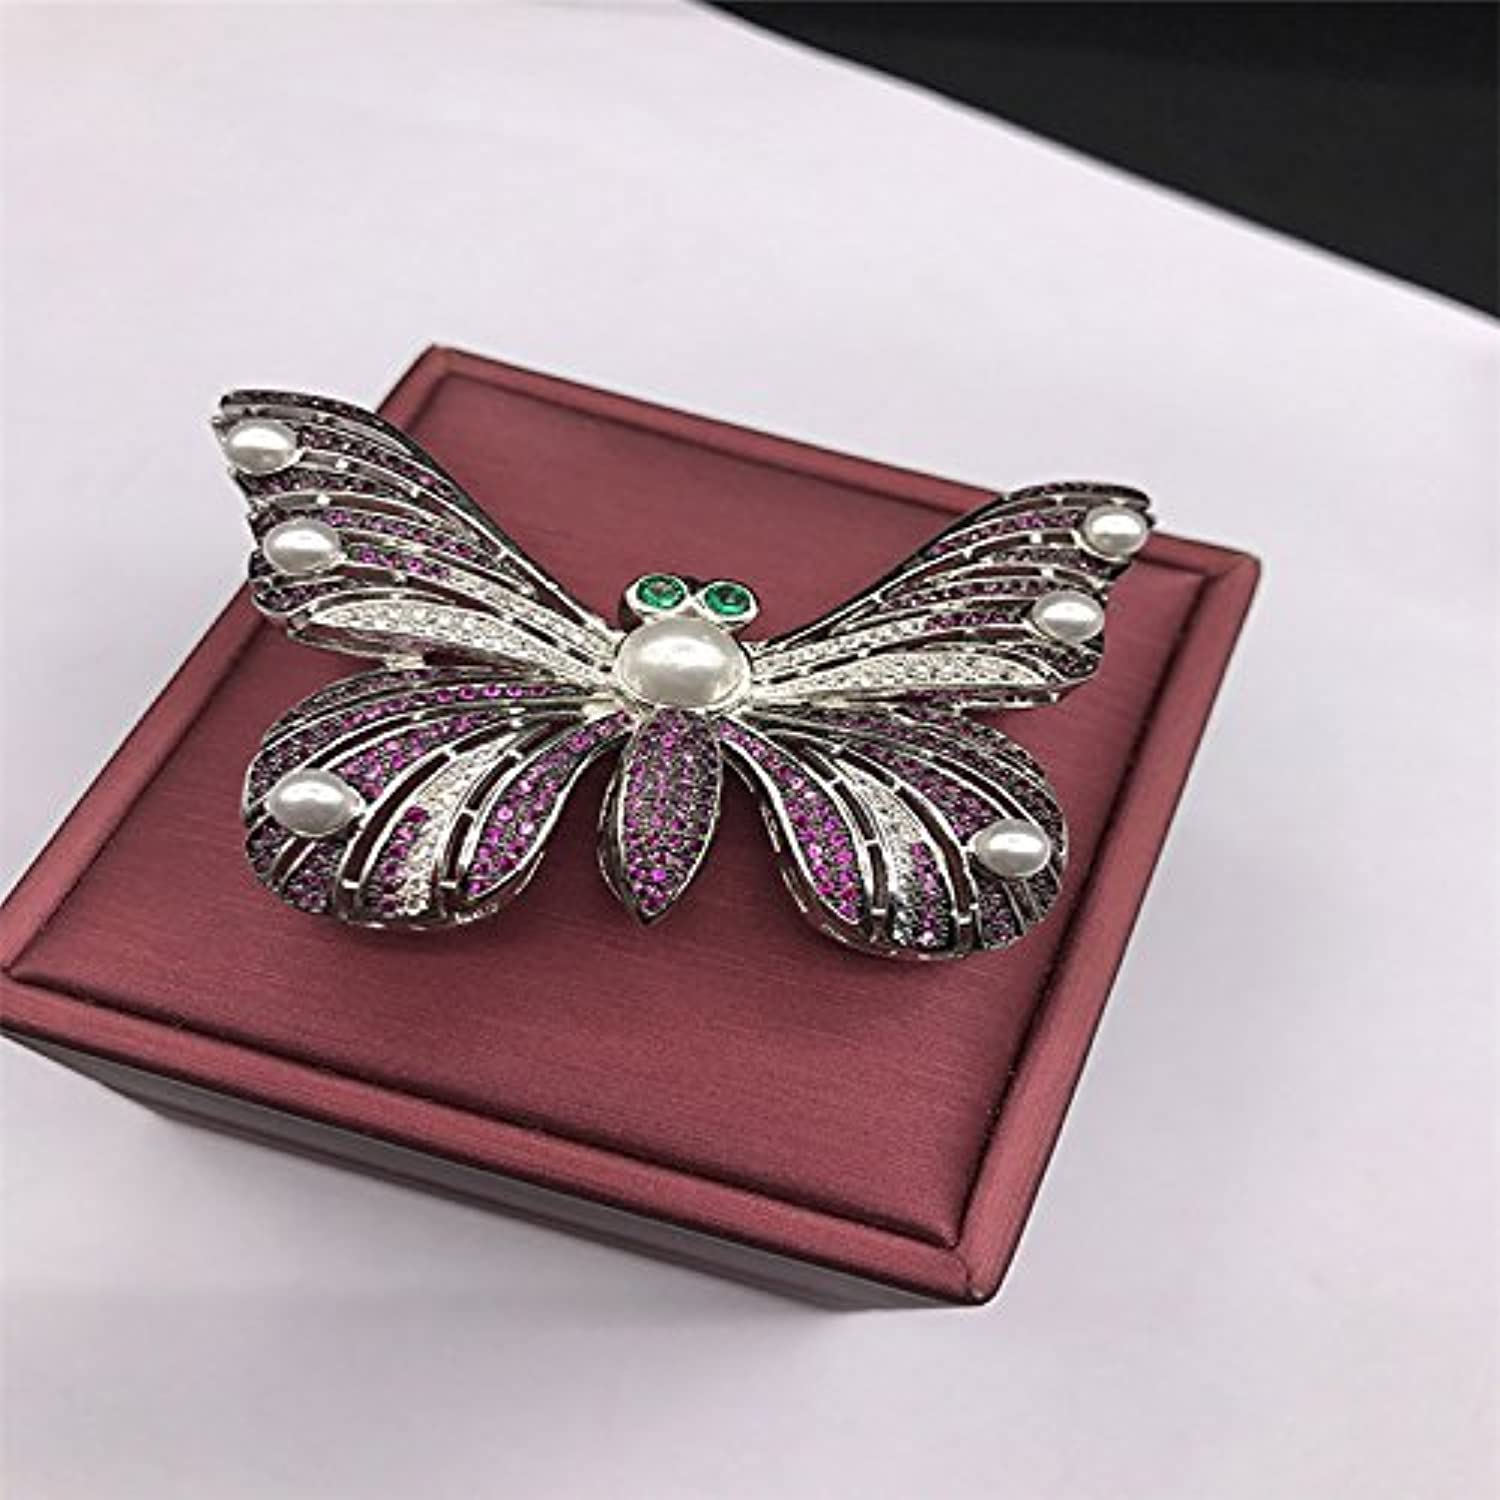 Do not pin Butterfly Brooch pin Badge Pectoral Gilded Bronze Inlaid Zircon Pearl Handmade Boutique Deals